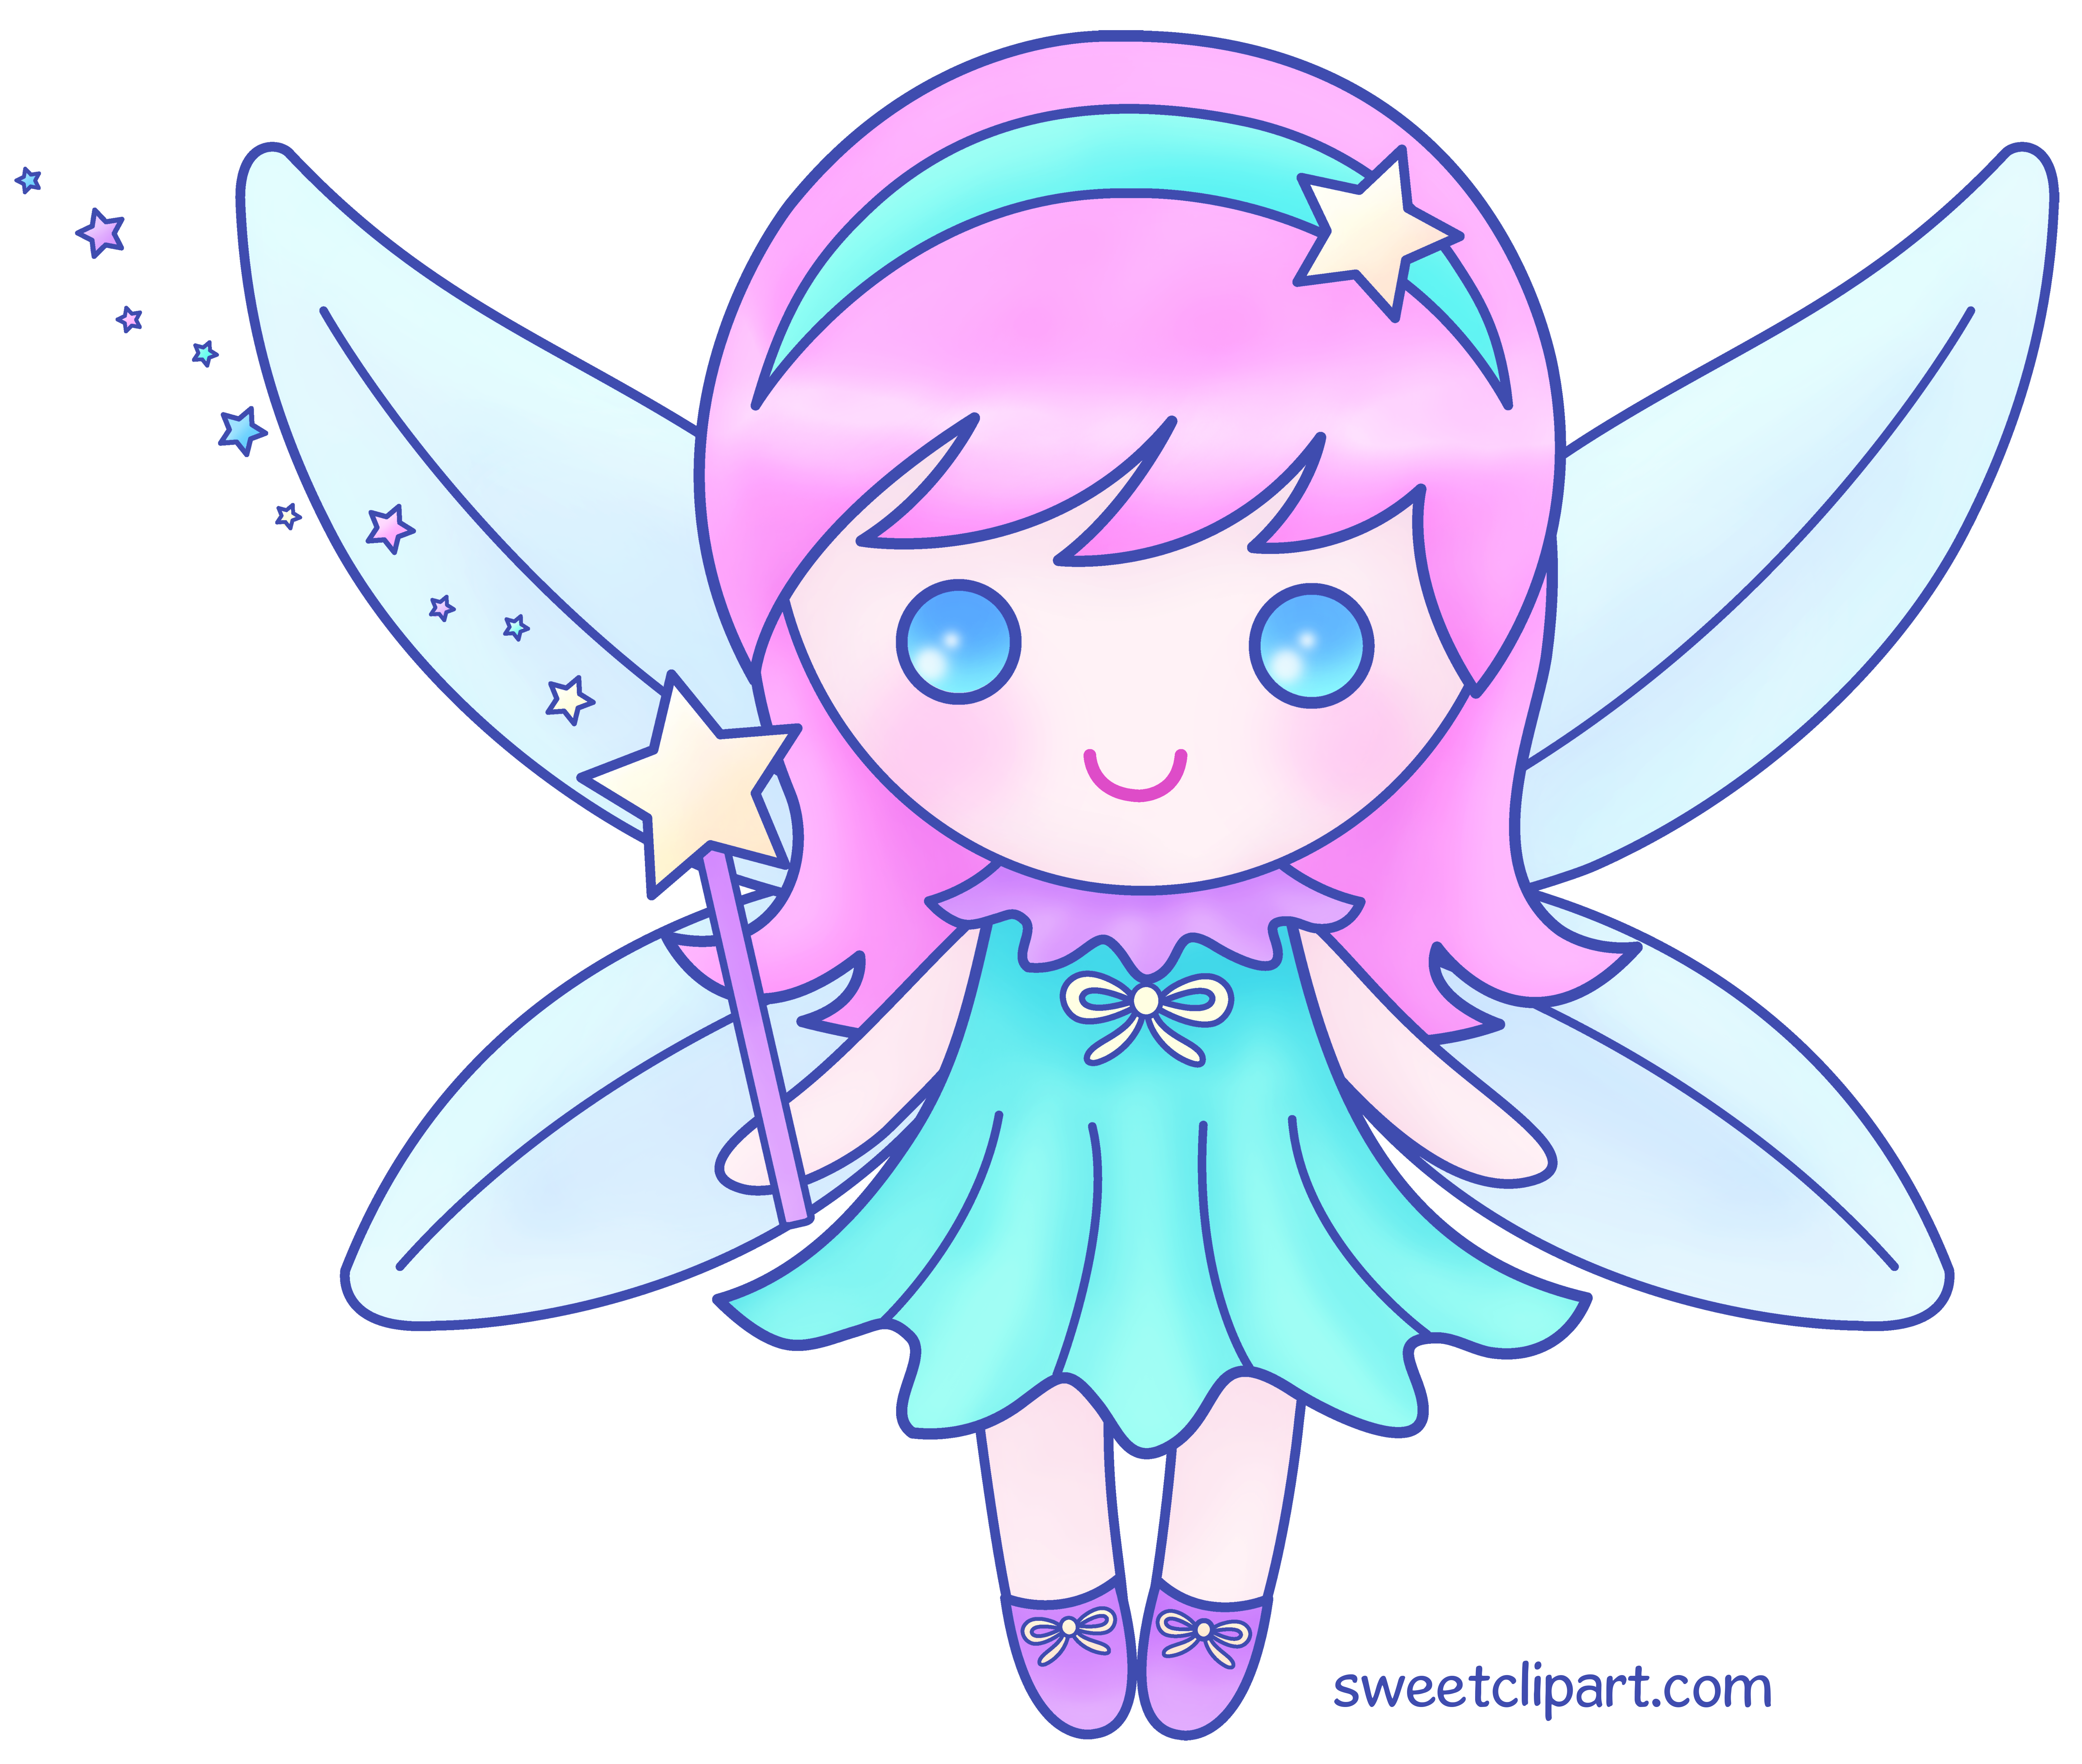 graphic royalty free stock Fairy transparent color. Cute pink version free